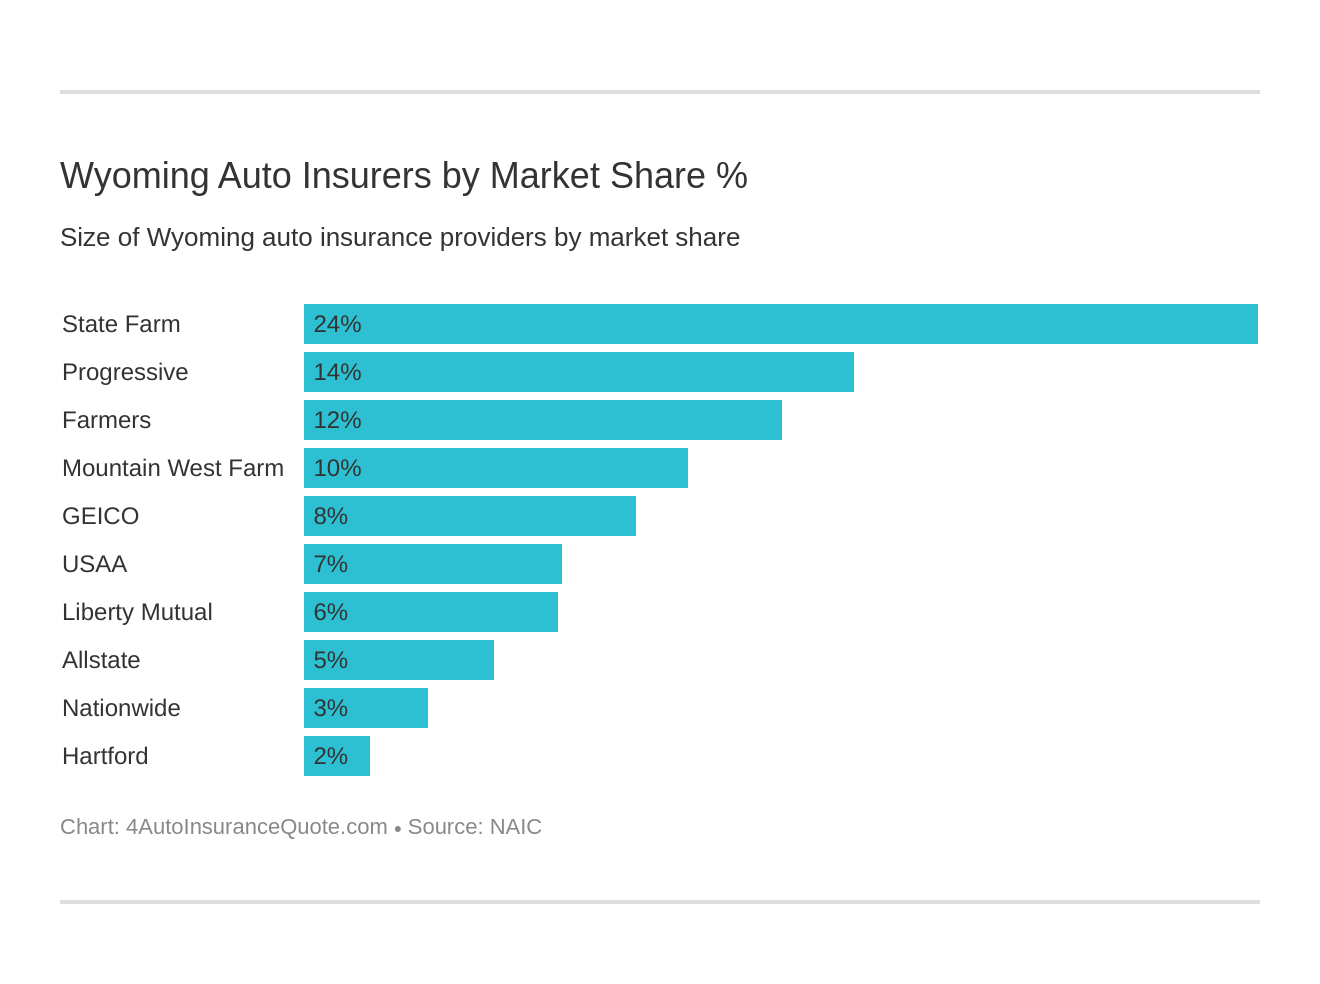 Wyoming Auto Insurers by Market Share %